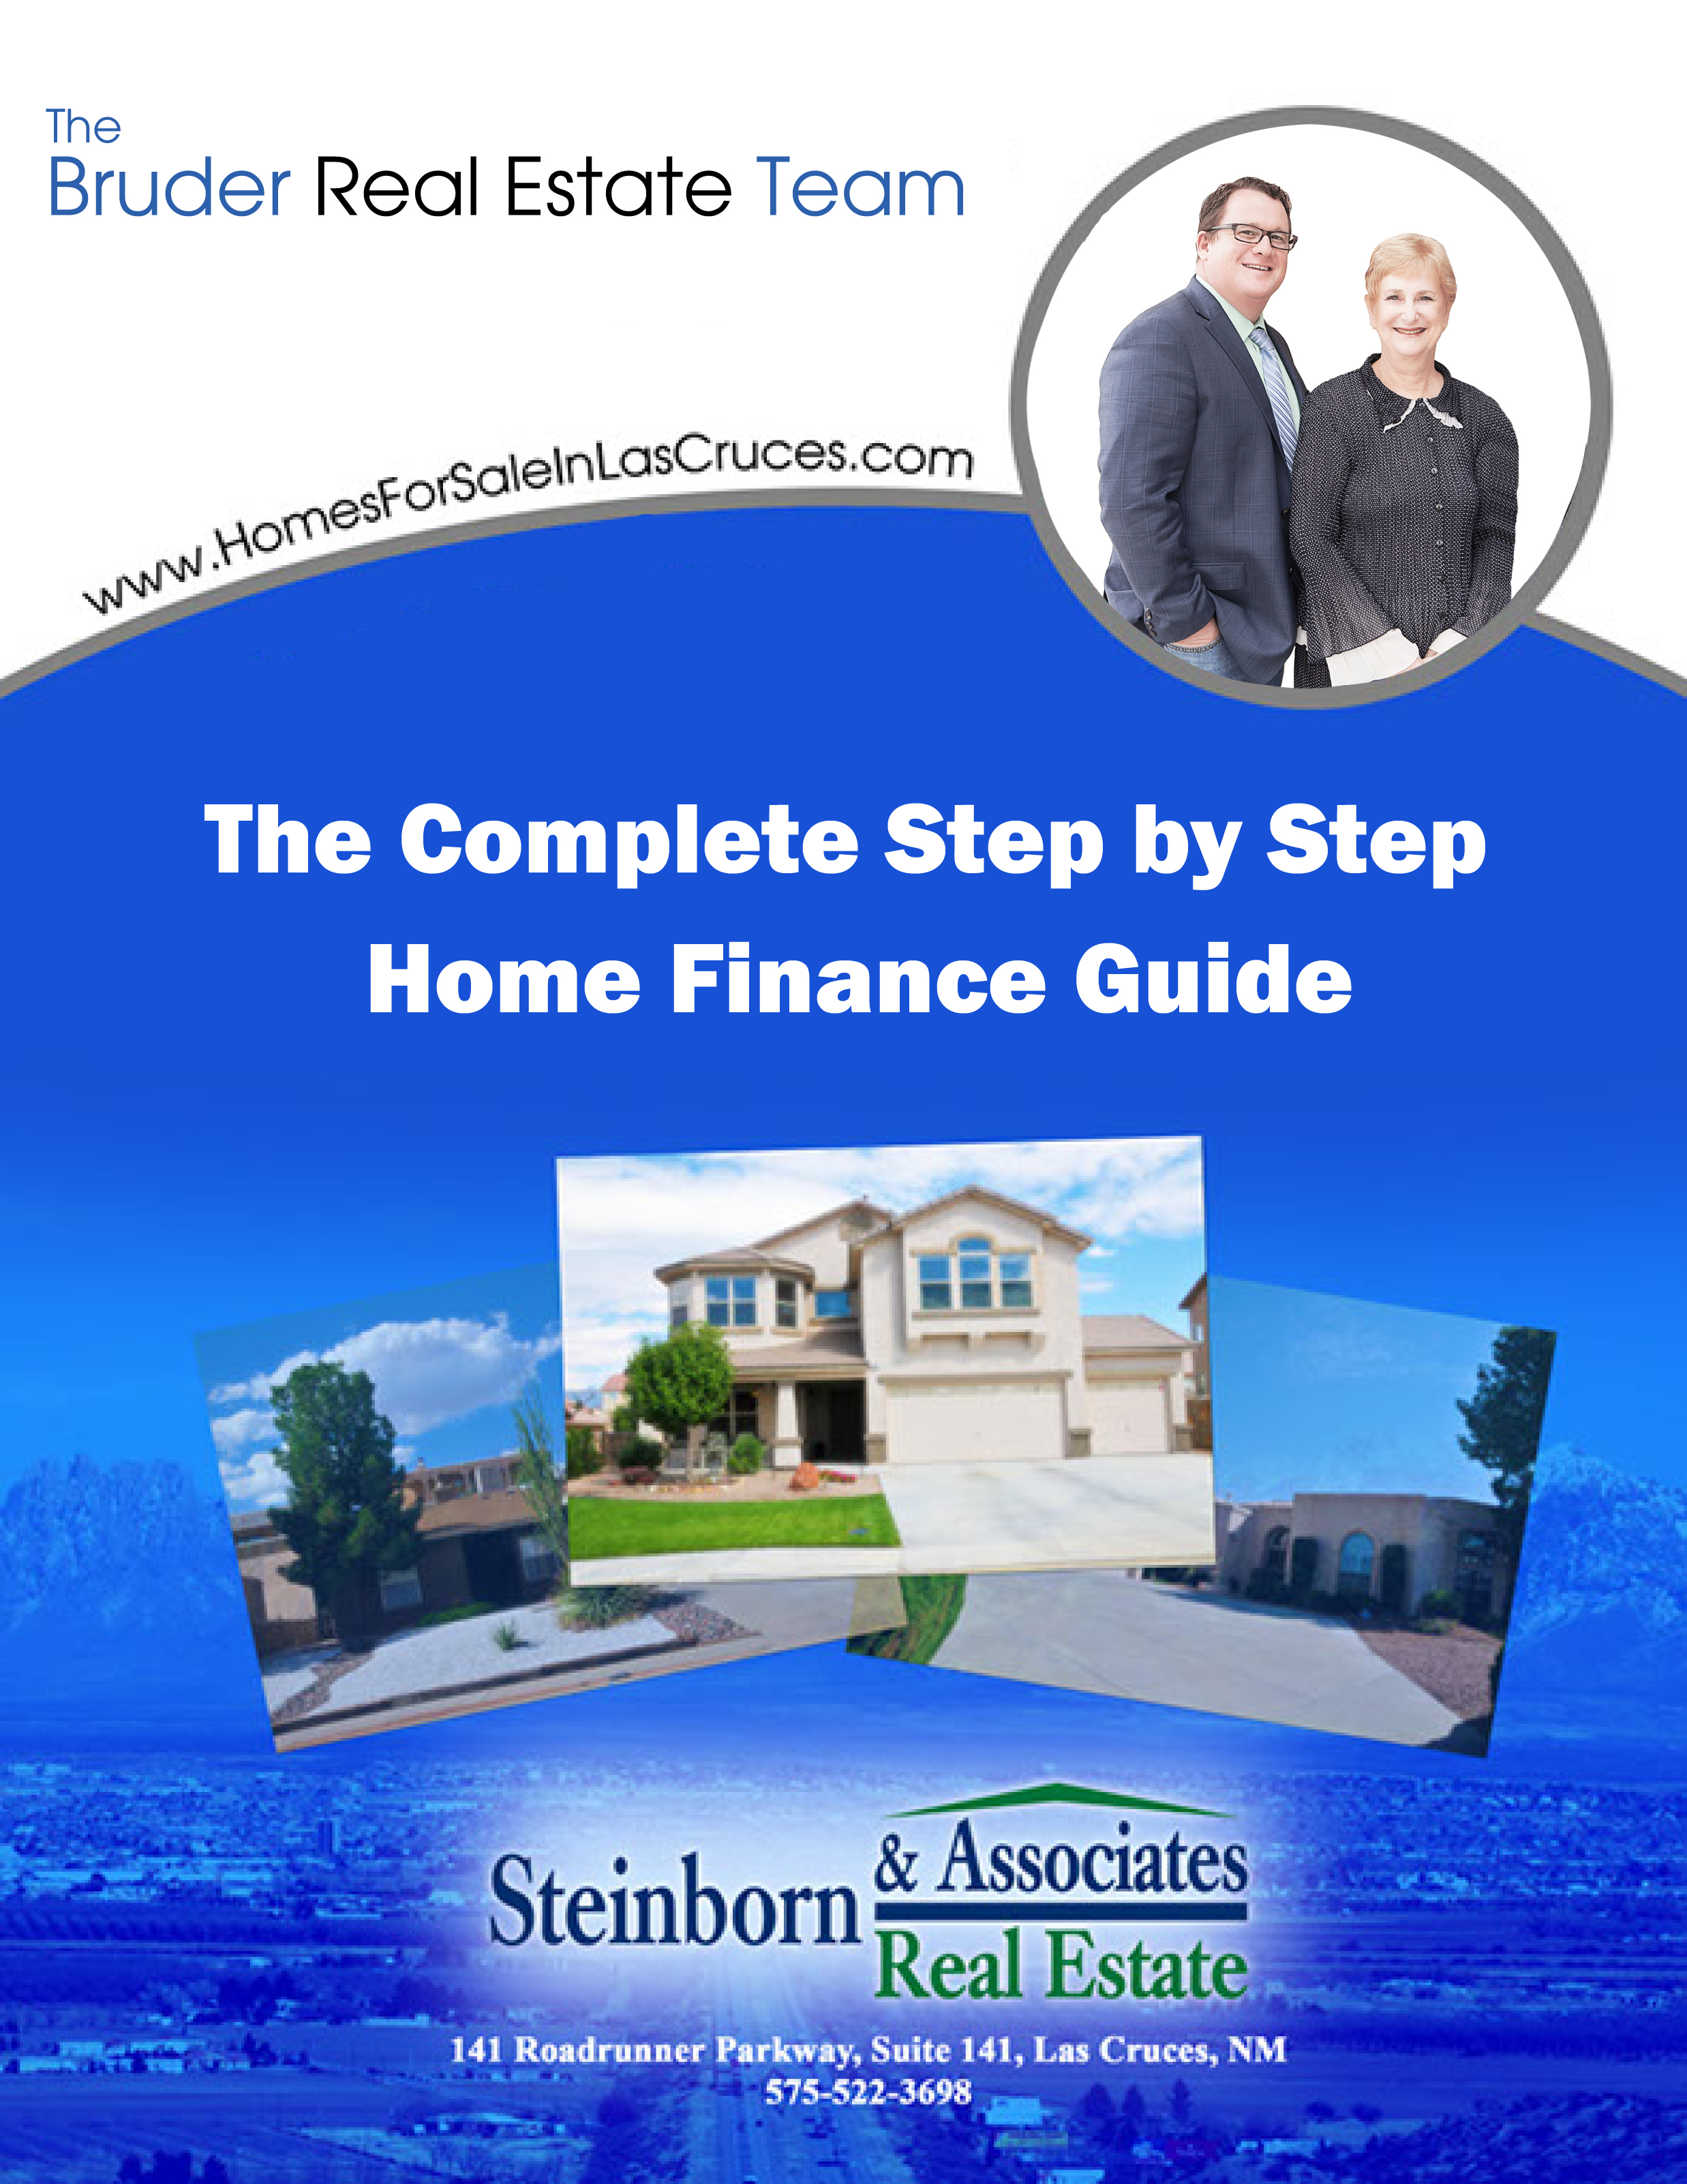 Step-by-step home finance guide